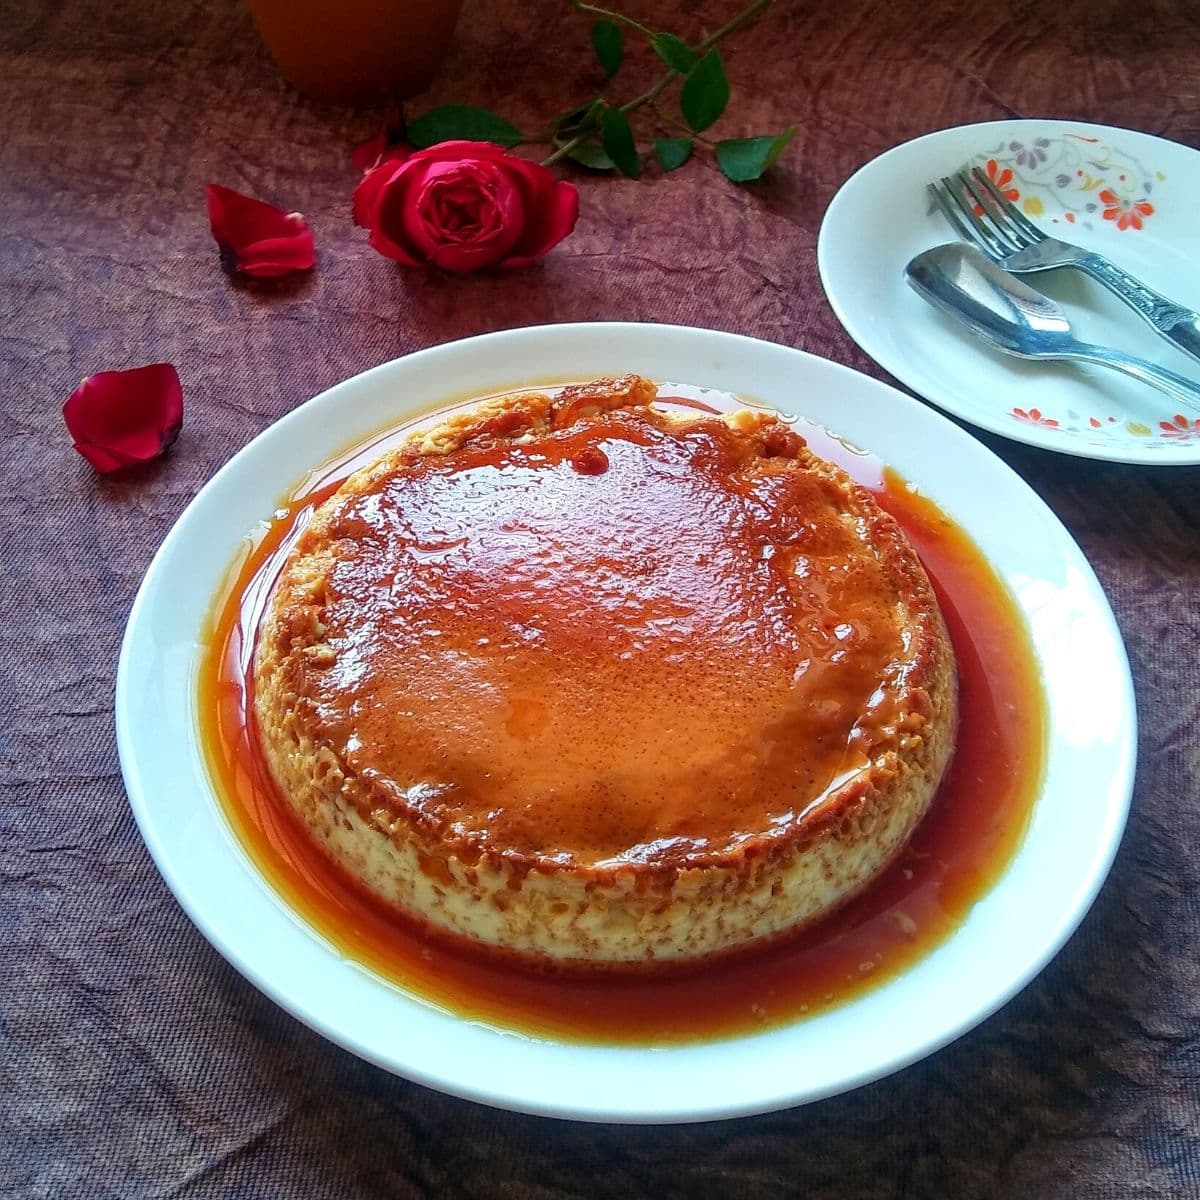 Steamed Caramel Custard Pudding Recipe